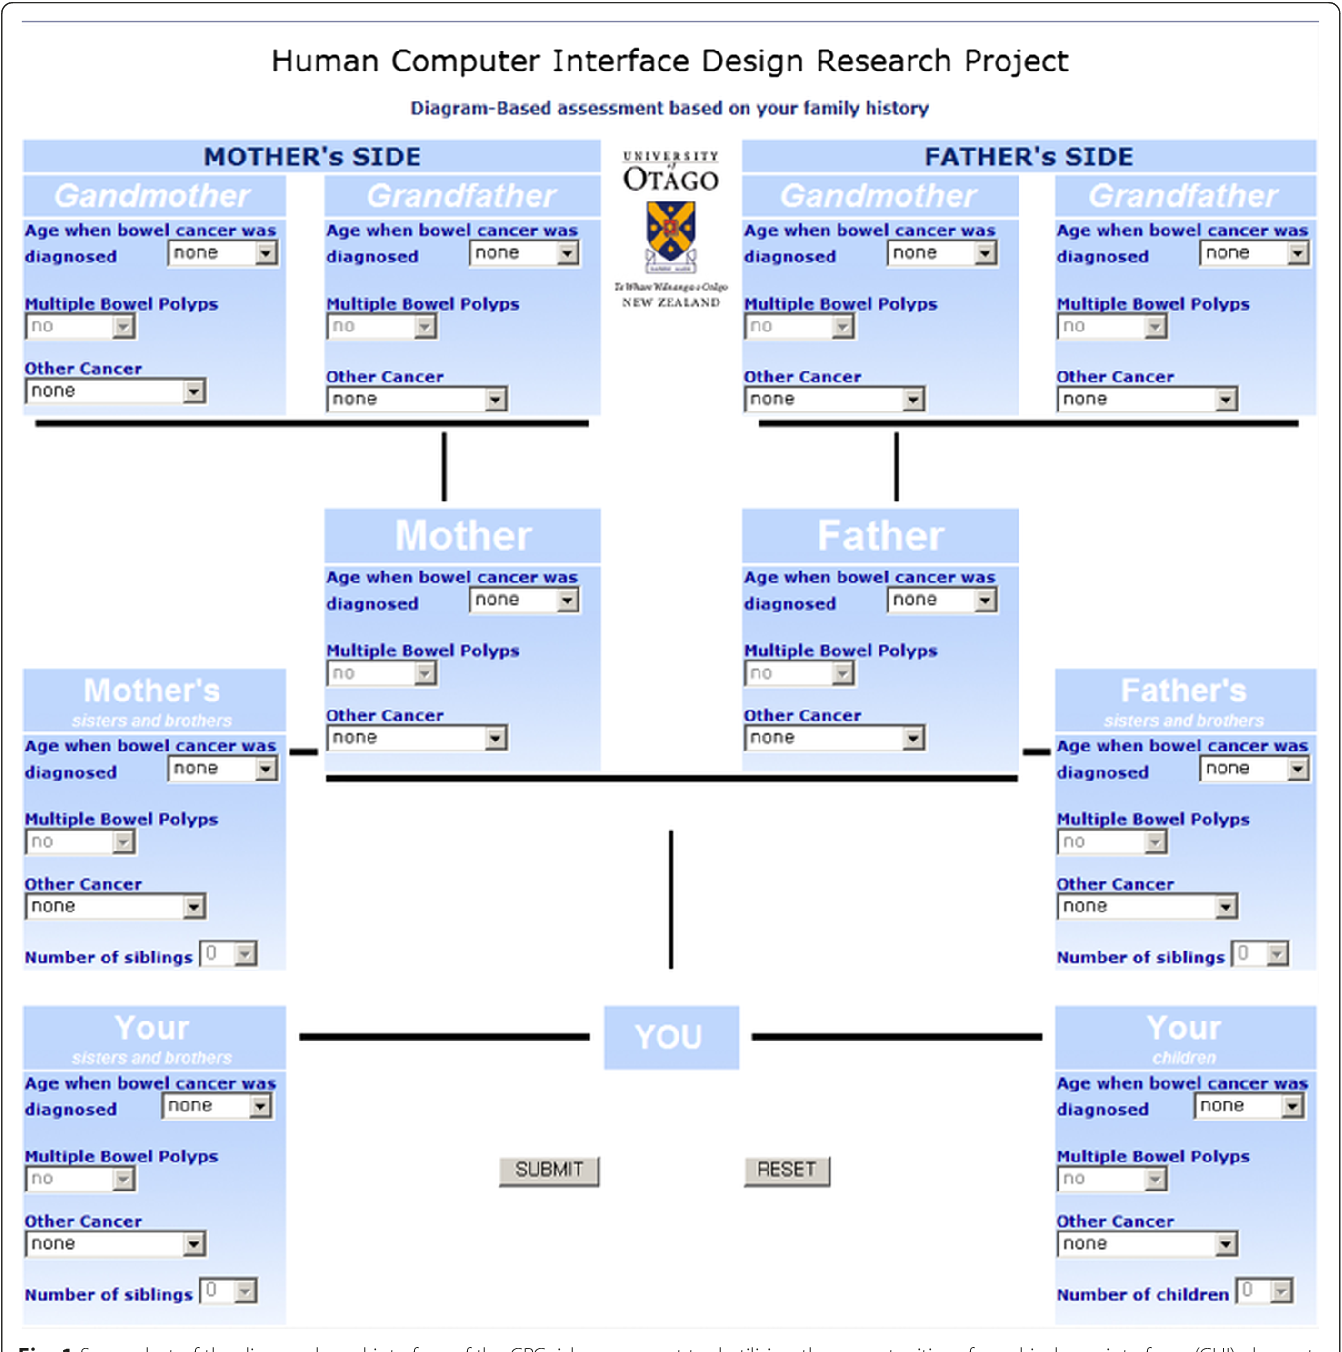 Figure 1 From Family History Assessment For Colorectal Cancer Crc Risk Analysis Comparison Of Diagram And Questionnaire Based Web Interfaces Semantic Scholar